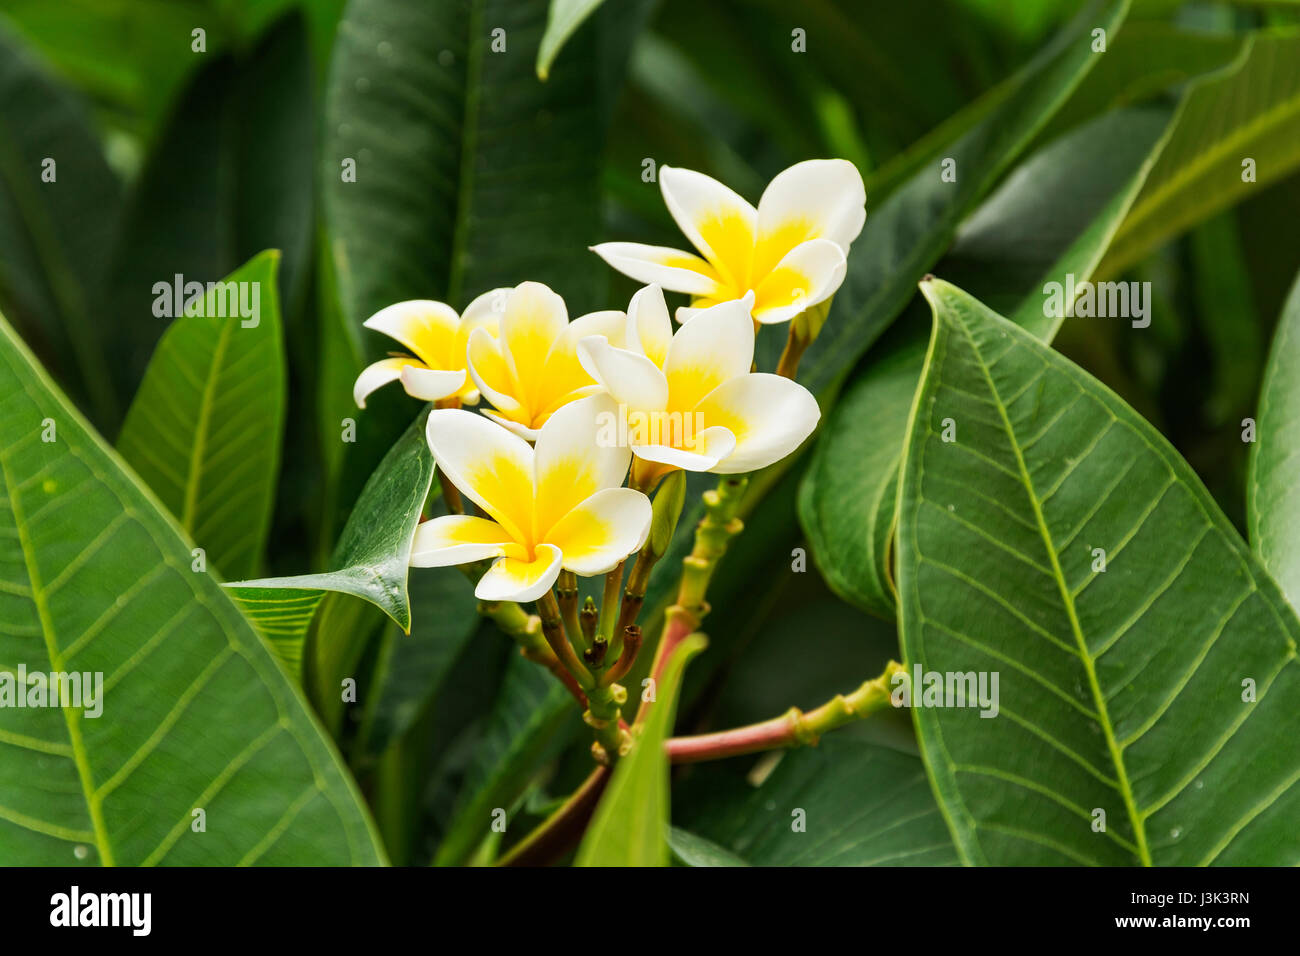 Flower white and yellow tropical plant stock photo 139947017 alamy flower white and yellow tropical plant mightylinksfo